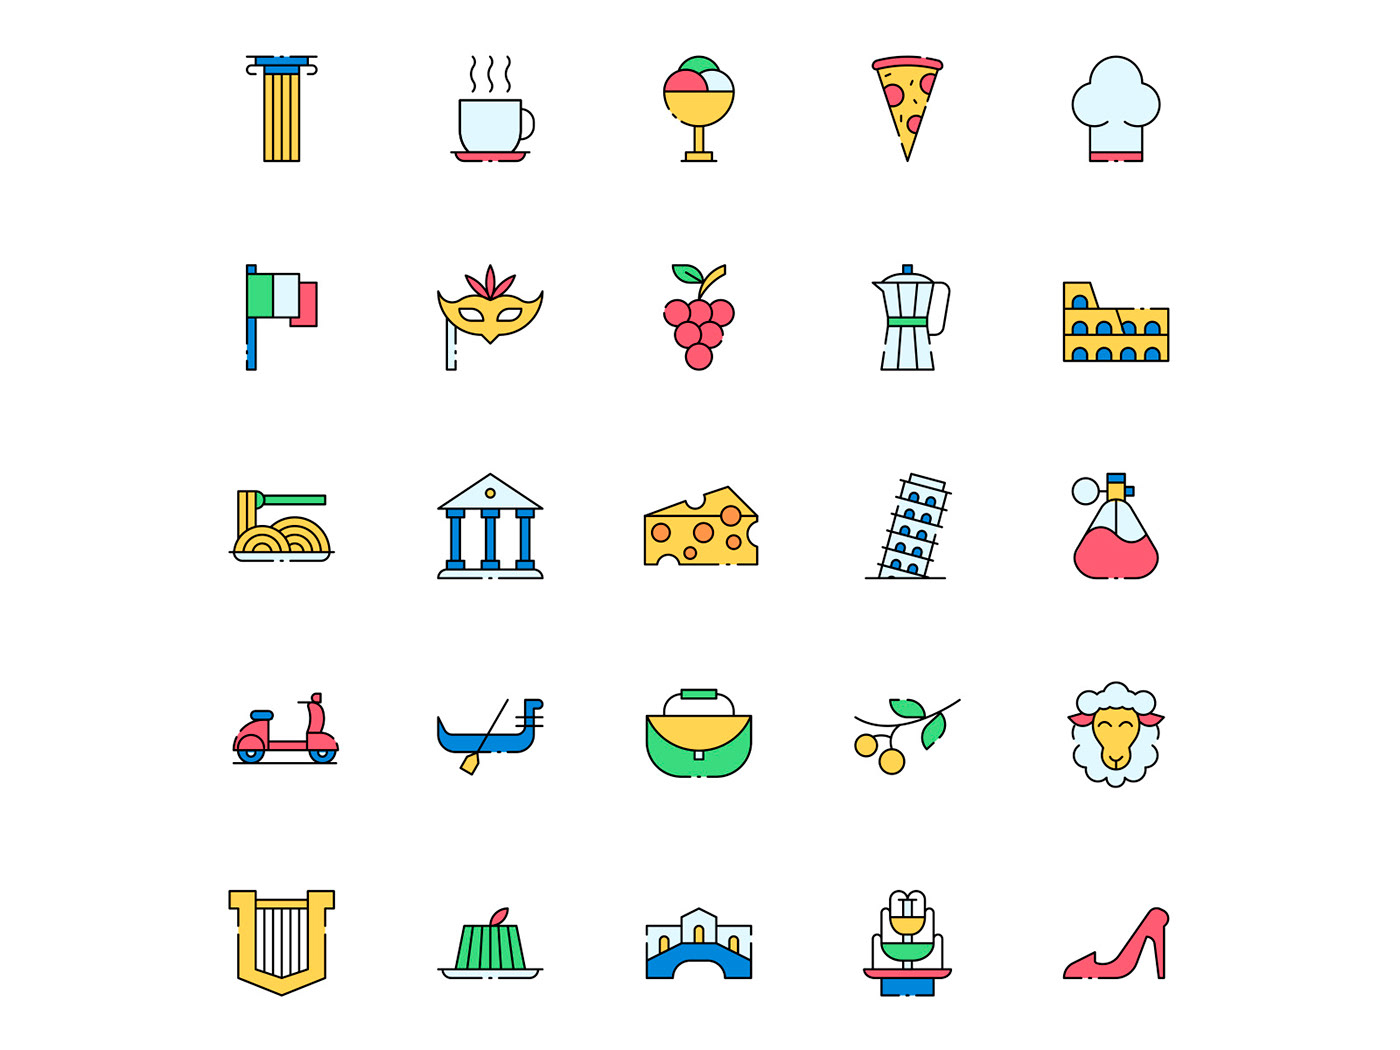 freebie icon design  icons download icons pack icons set Italy italy icon Italy Vector vector design vector icon